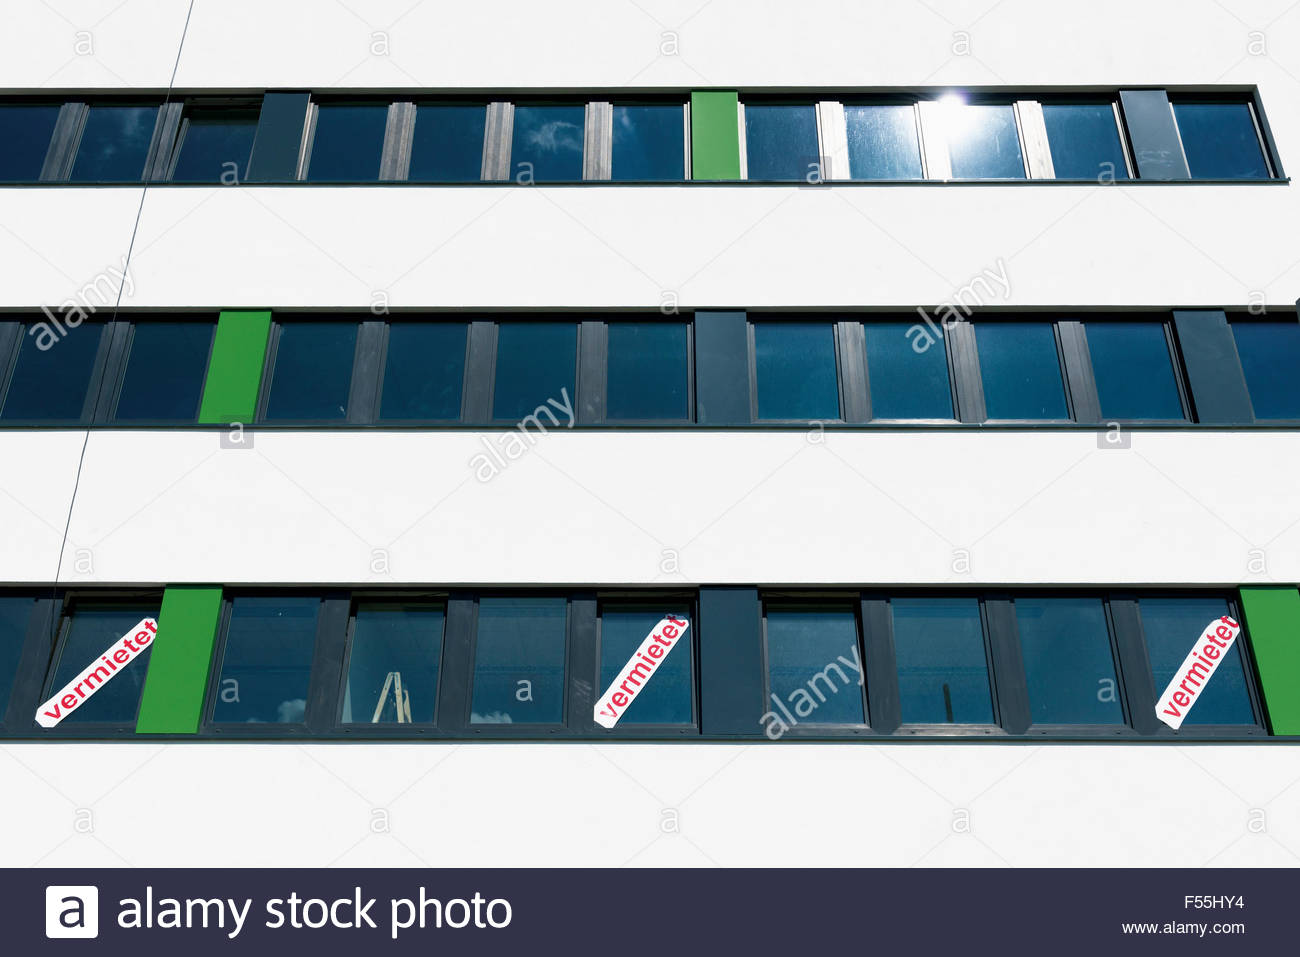 Germany, Monchengladbach, Office buiding - Stock Image